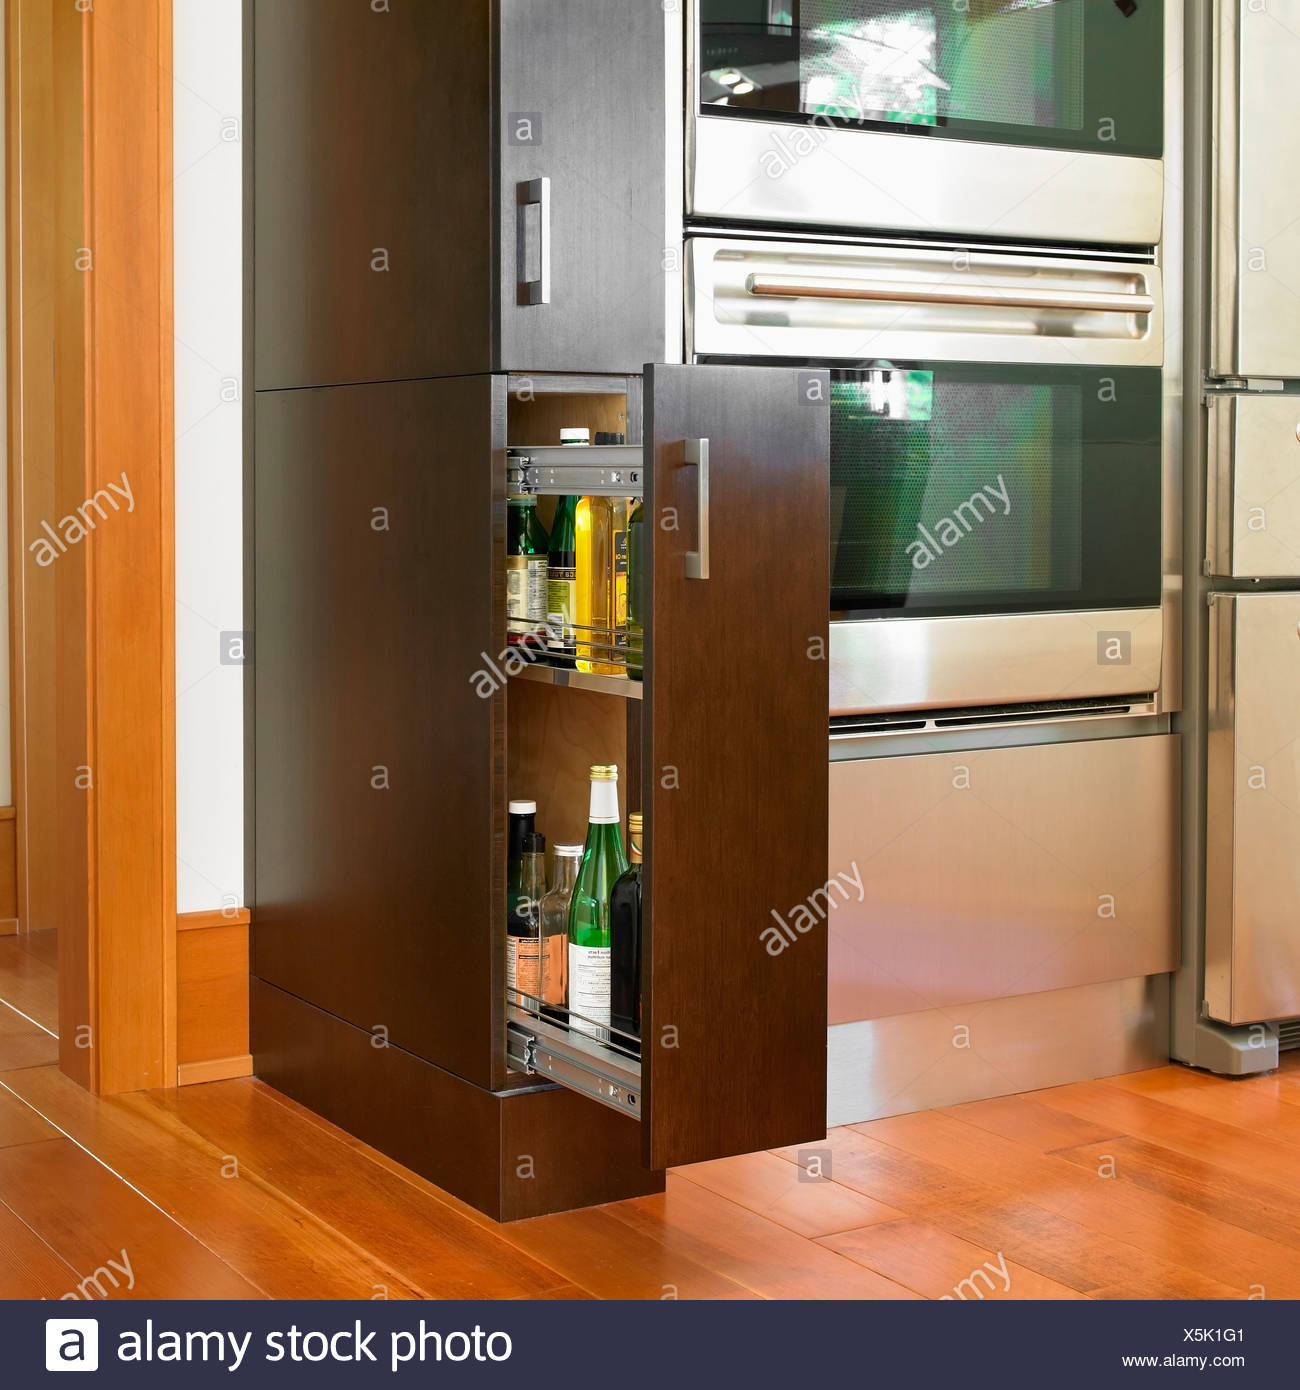 Contemporary Kitchen Cabinet With Stainless Steel Appliances Victoria Vancouver Island British Columbia Canada Stock Photo Alamy